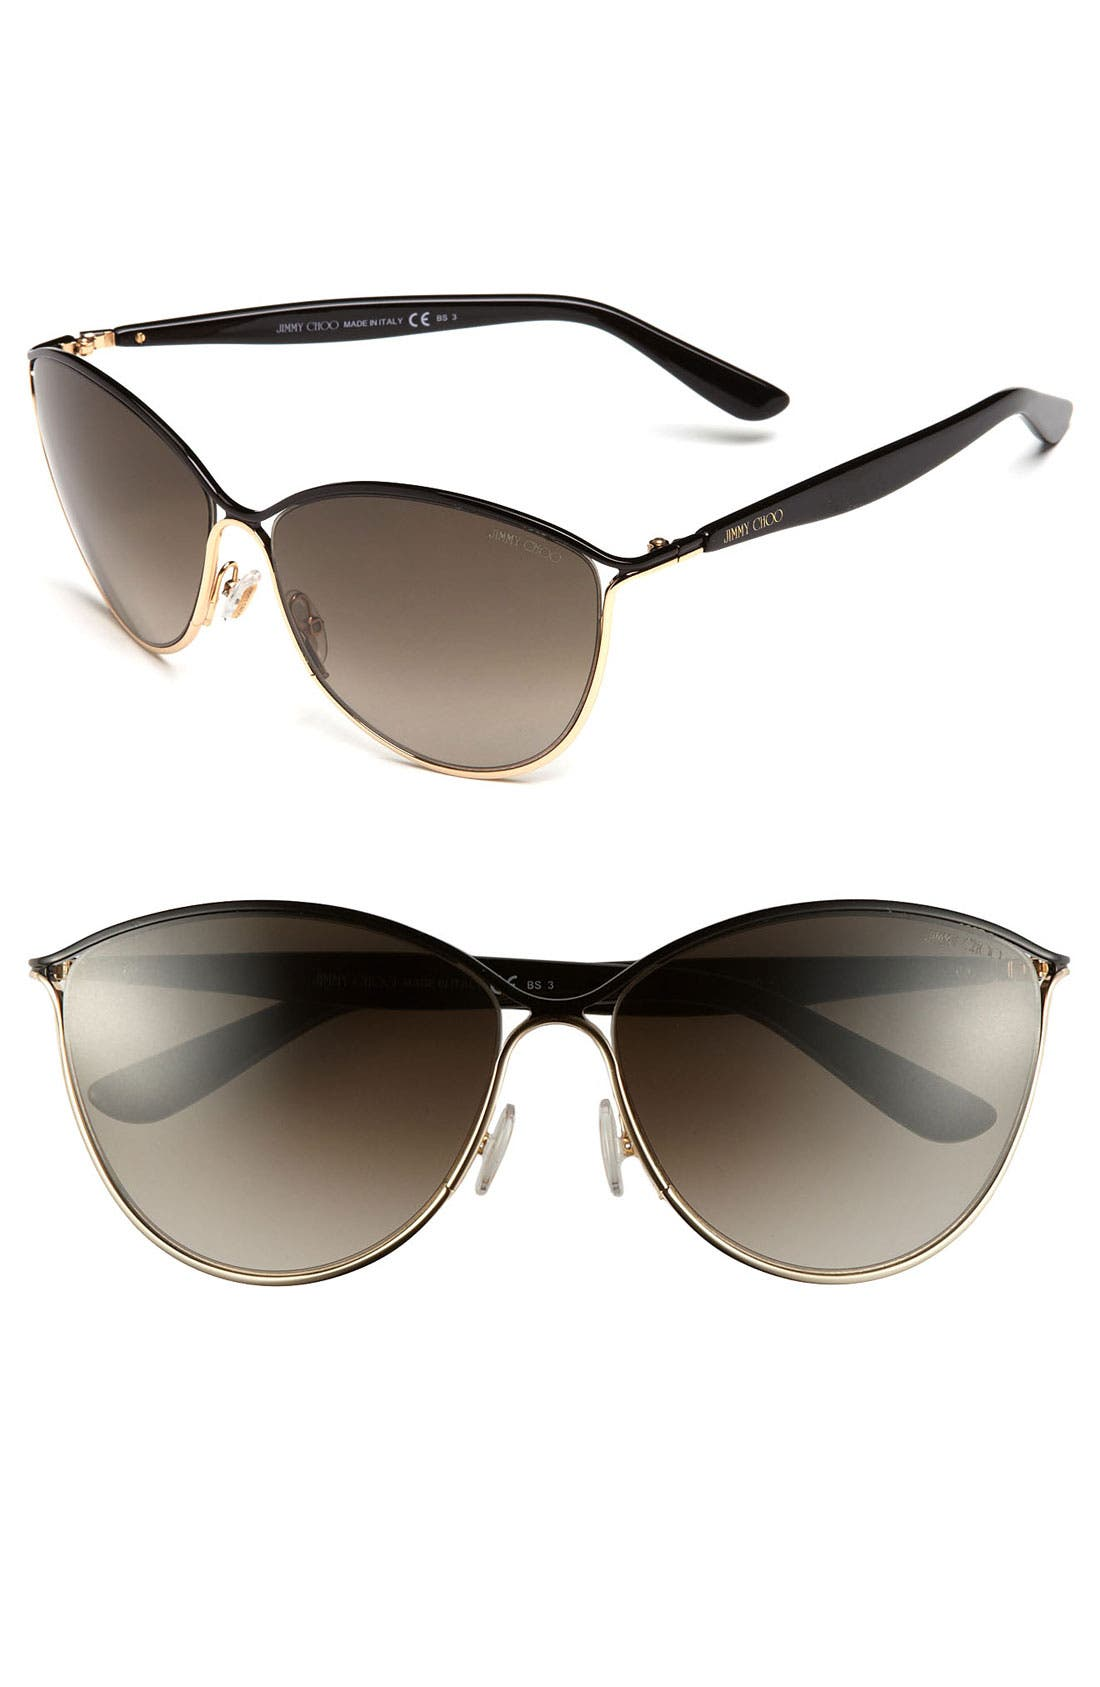 Main Image - Jimmy Choo 'Tanis' 59mm Cat's Eye Sunglasses